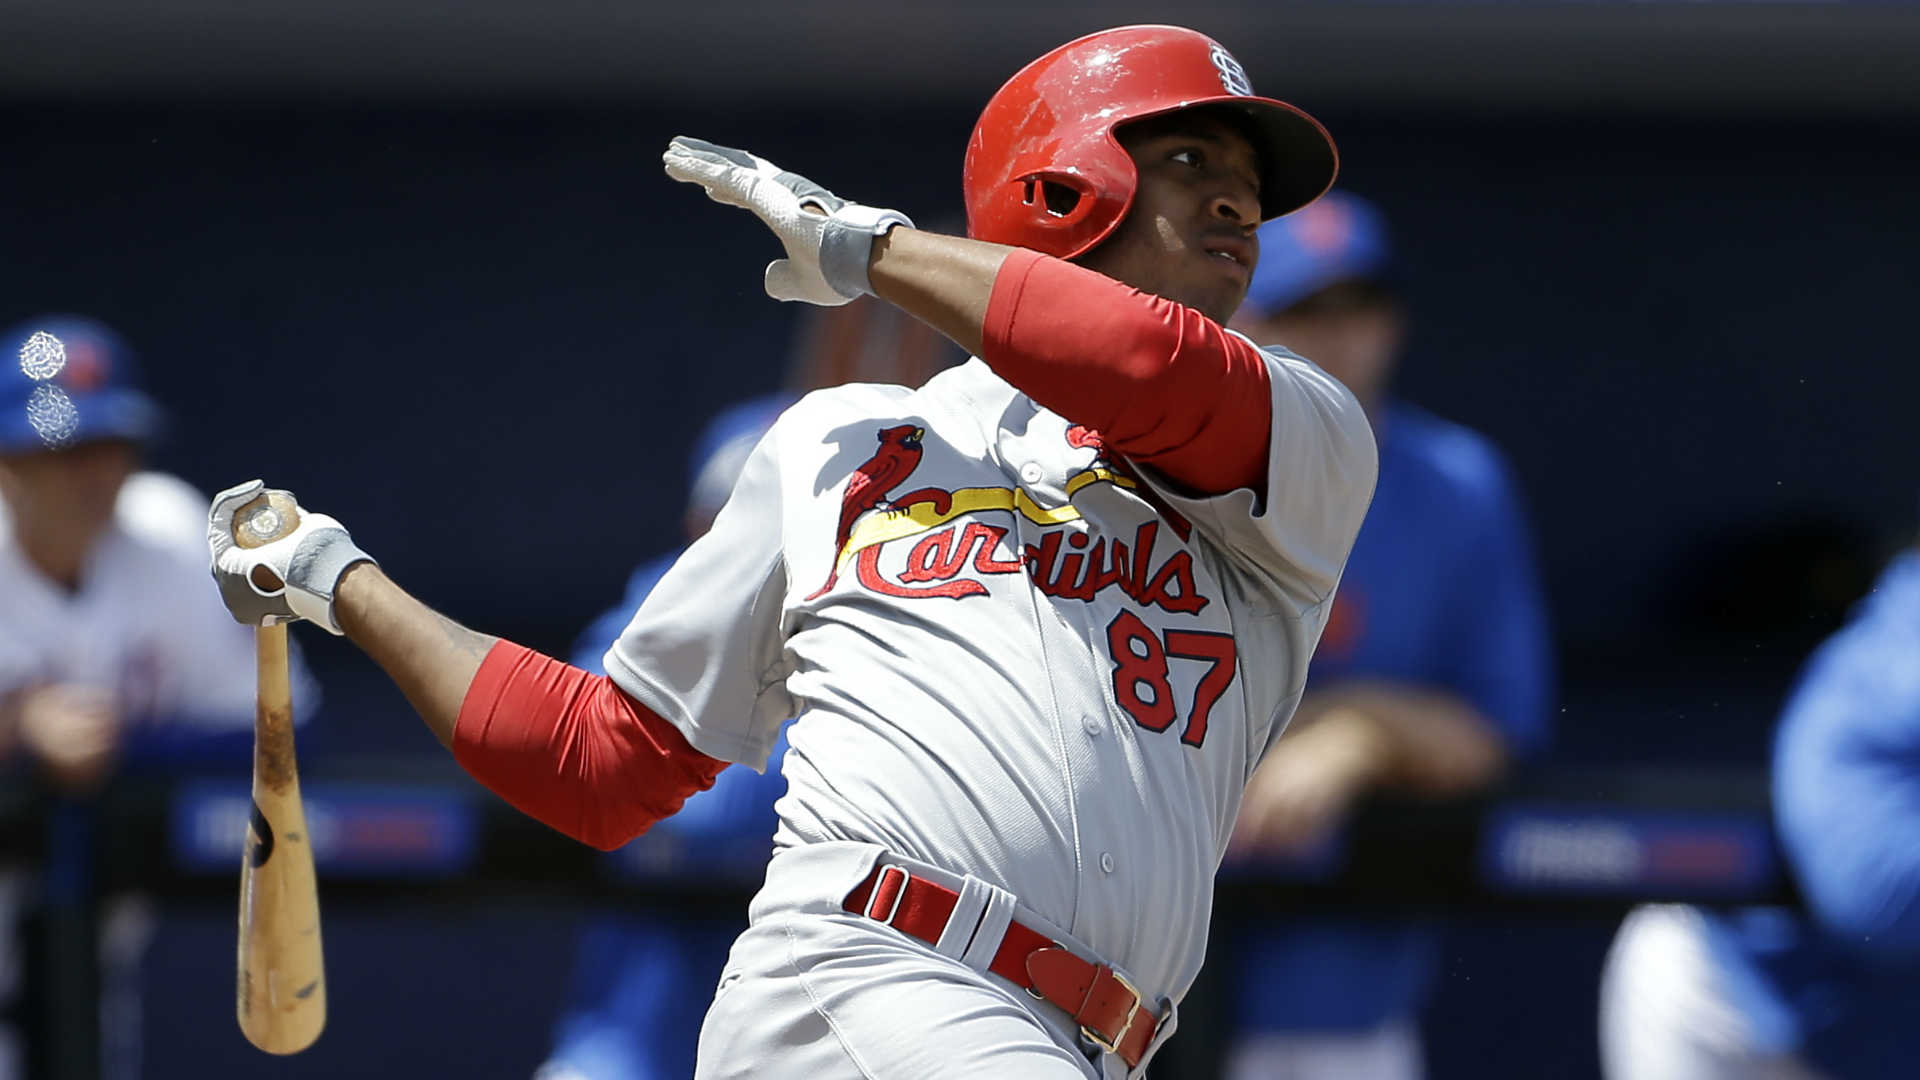 Fantasy baseball rankings: Top prospects for 2014